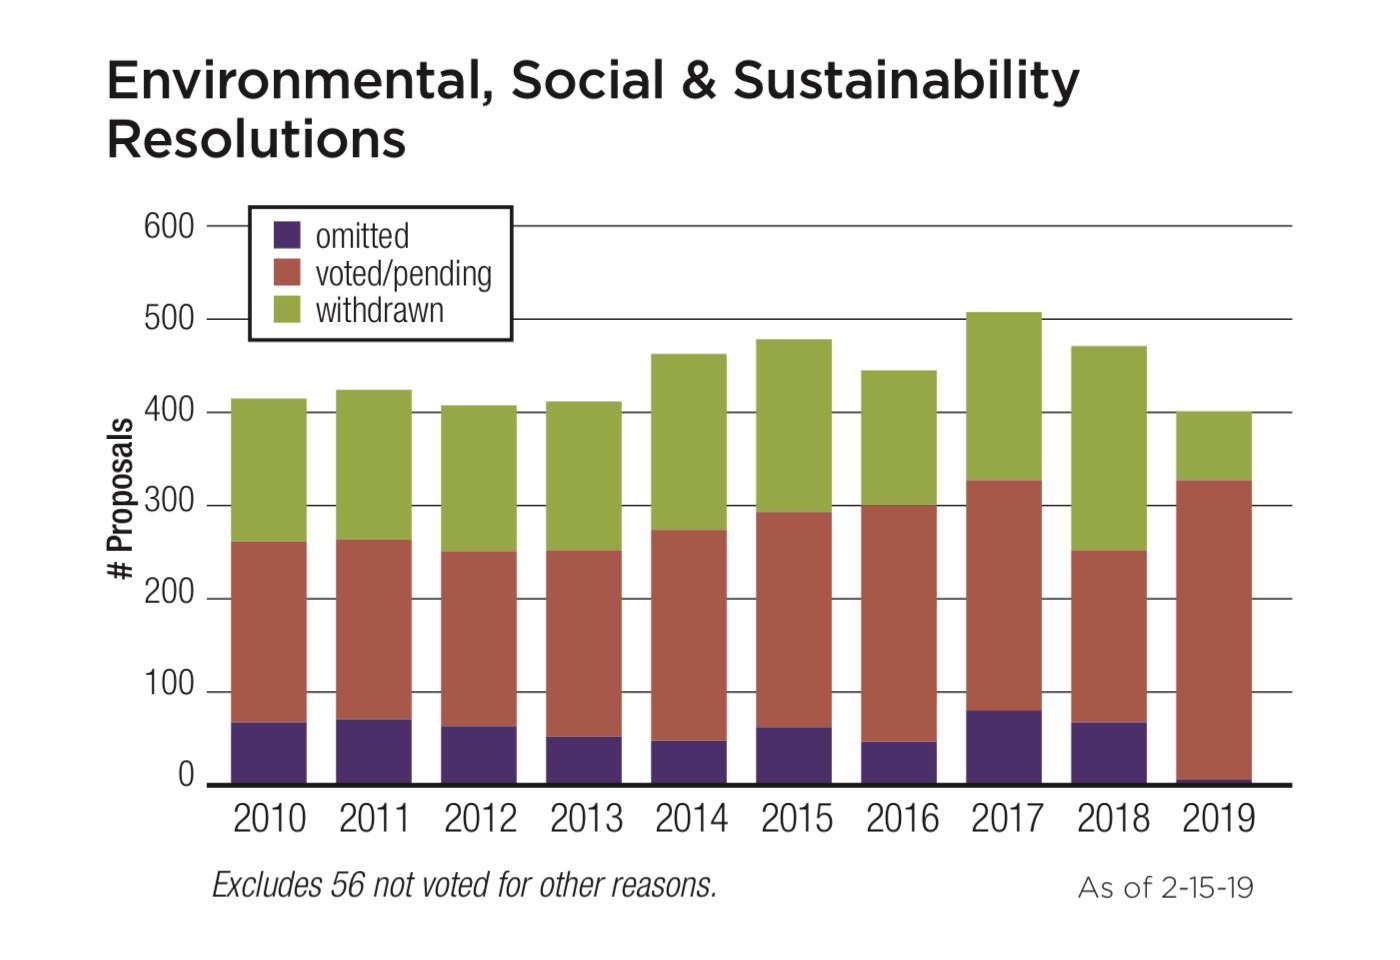 Environmental, Social, & Sustainability Resolutions